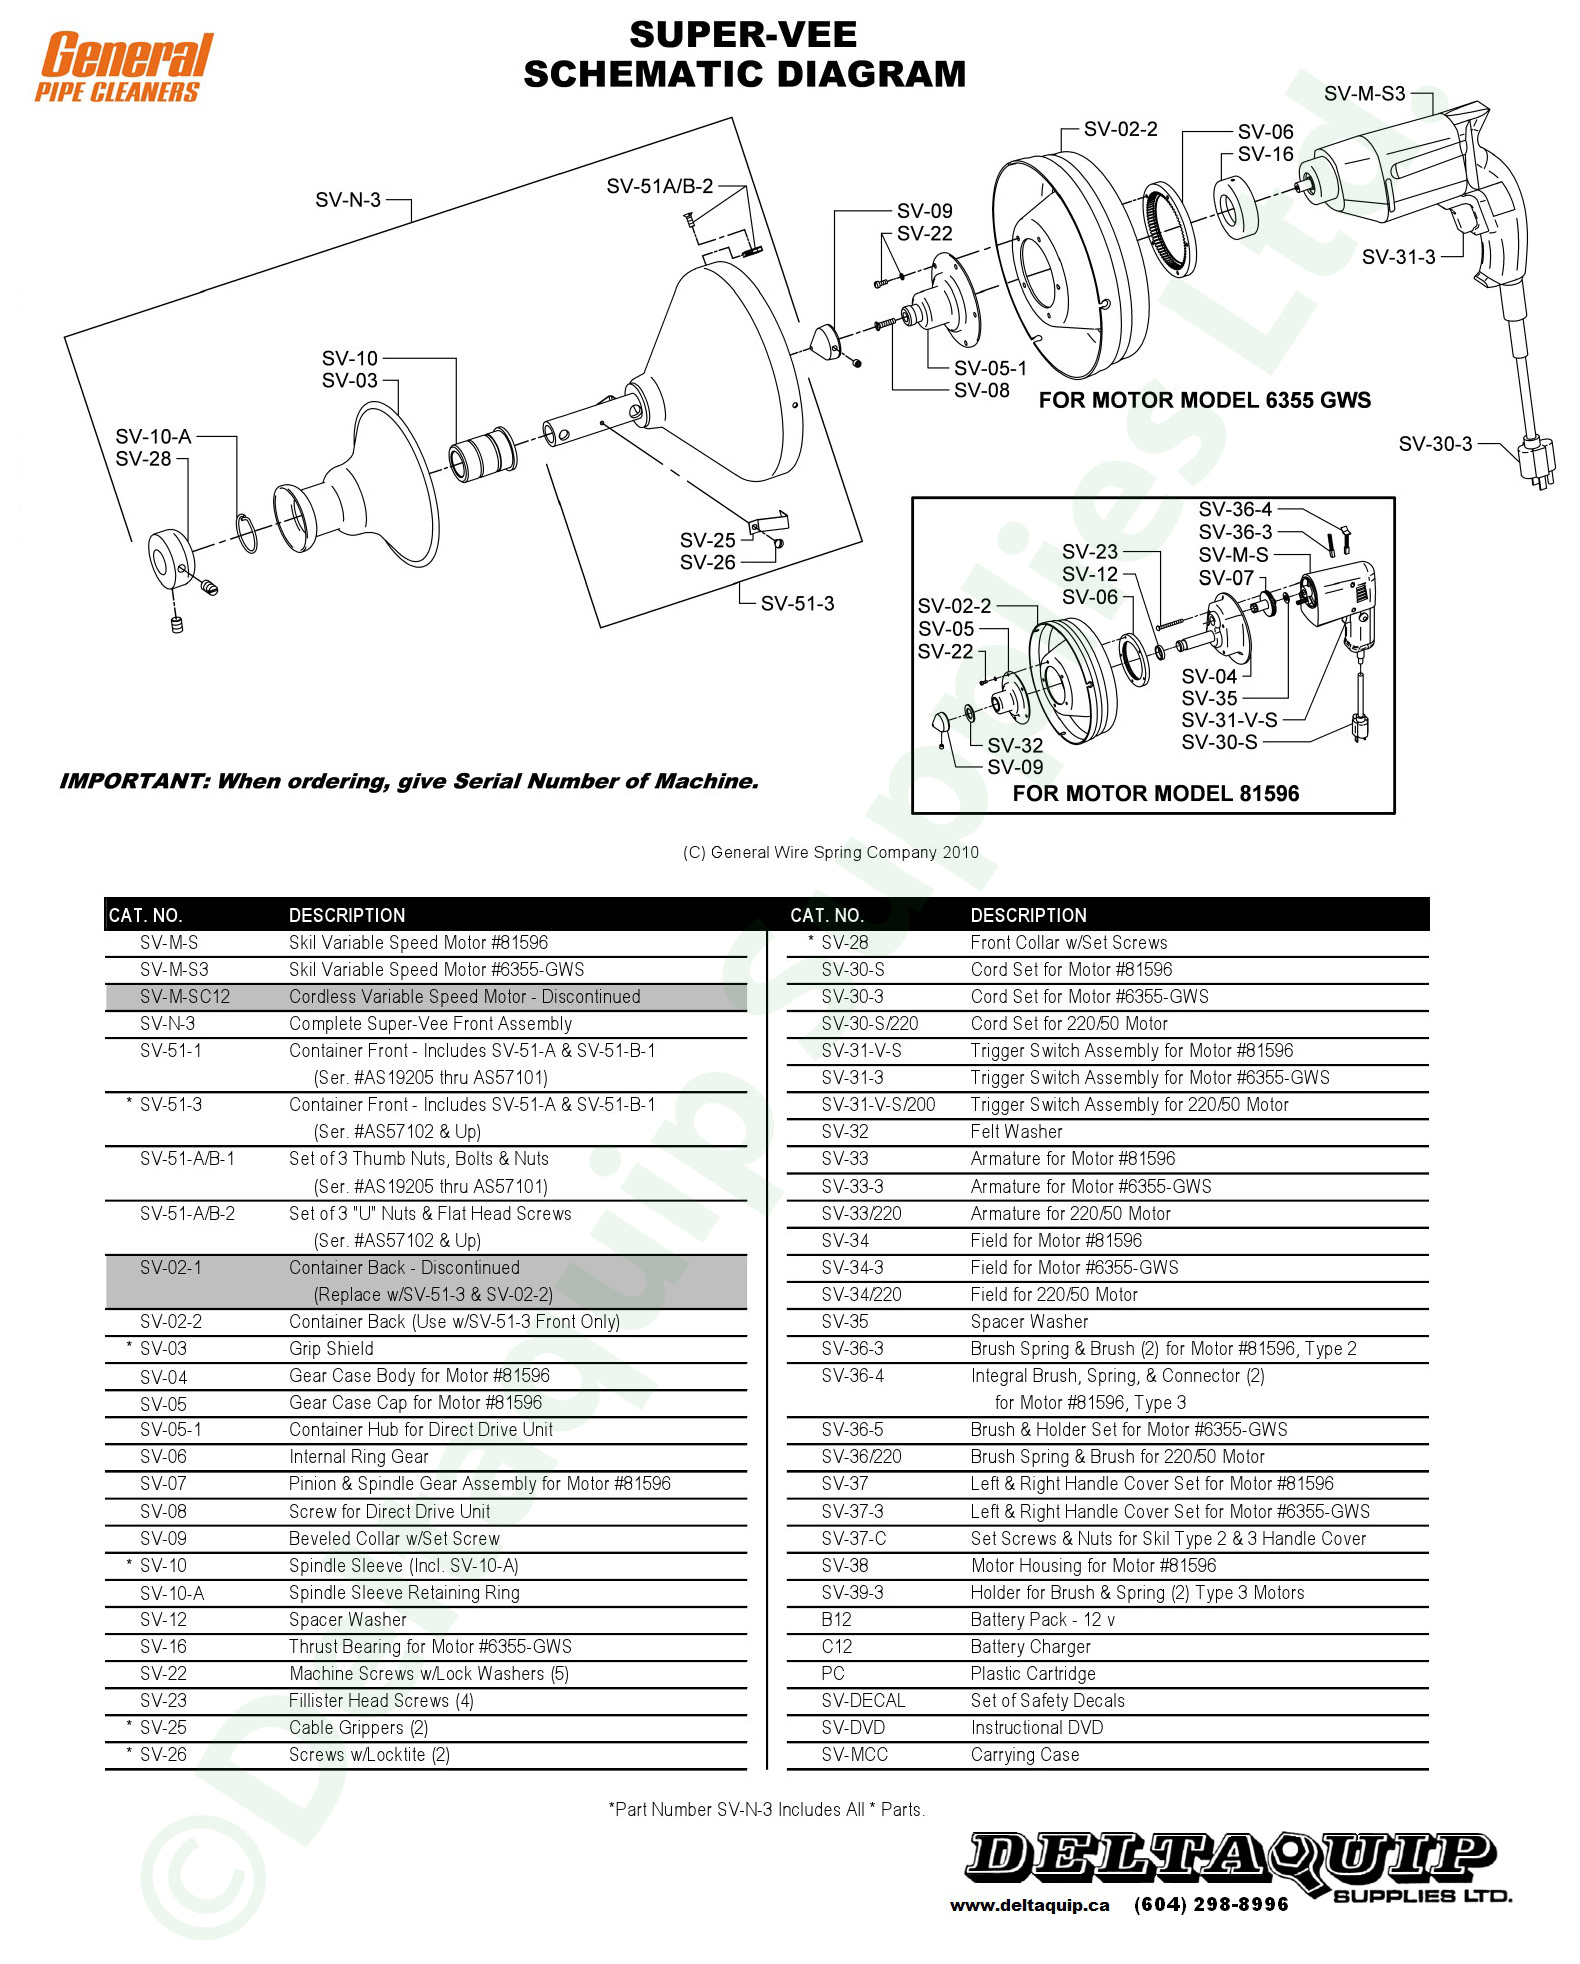 hight resolution of general super vee wiring diagram enthusiast wiring